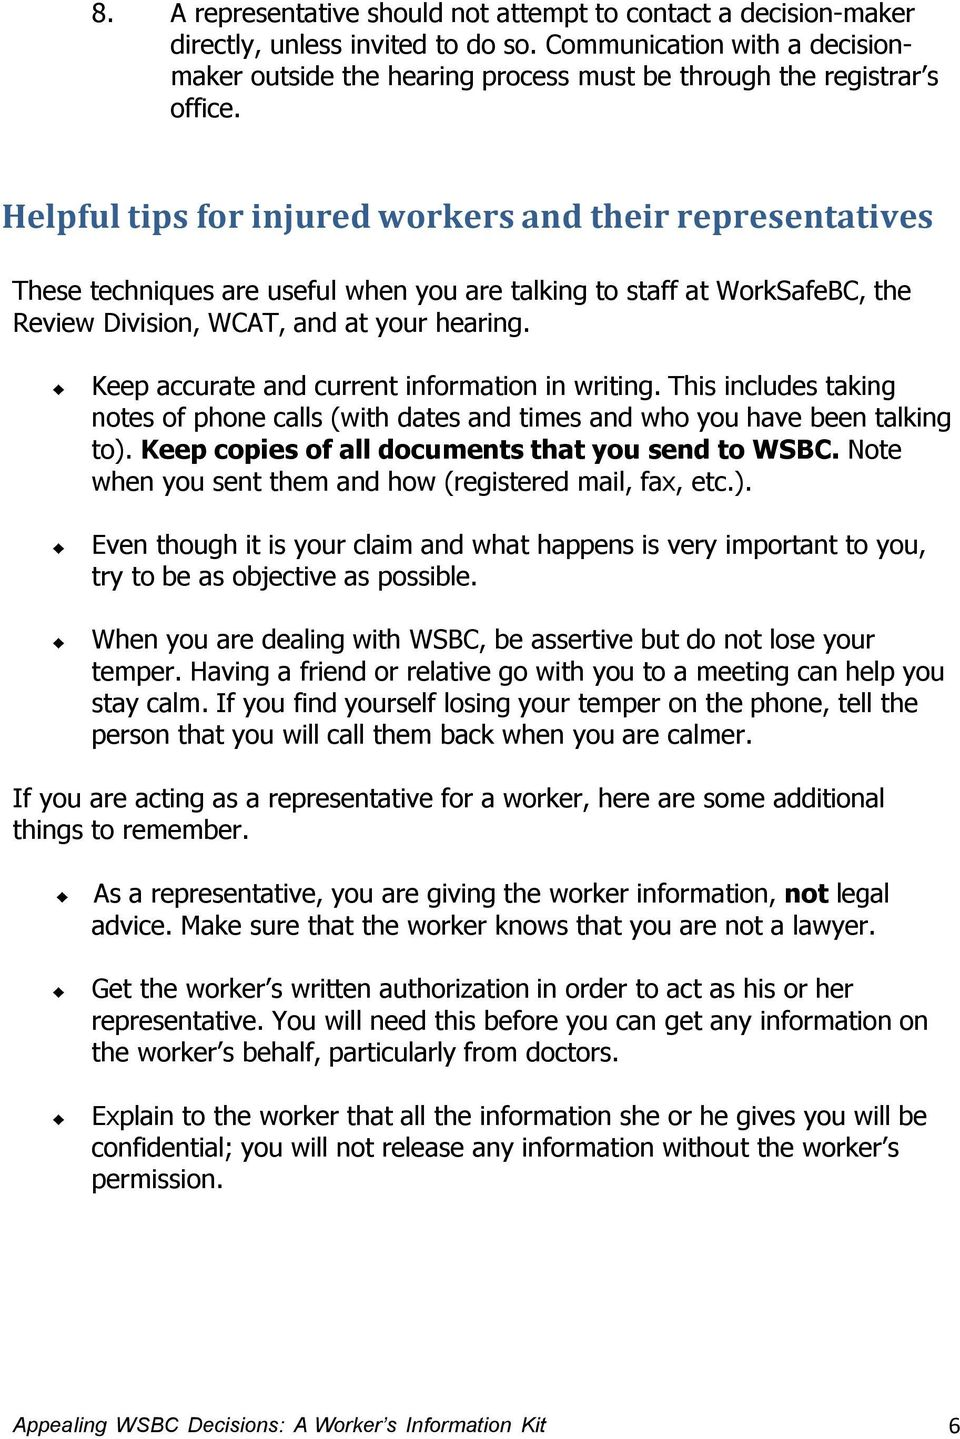 Helpful tips for injured workers and their representatives These techniques are useful when you are talking to staff at WorkSafeBC, the Review Division, WCAT, and at your hearing.